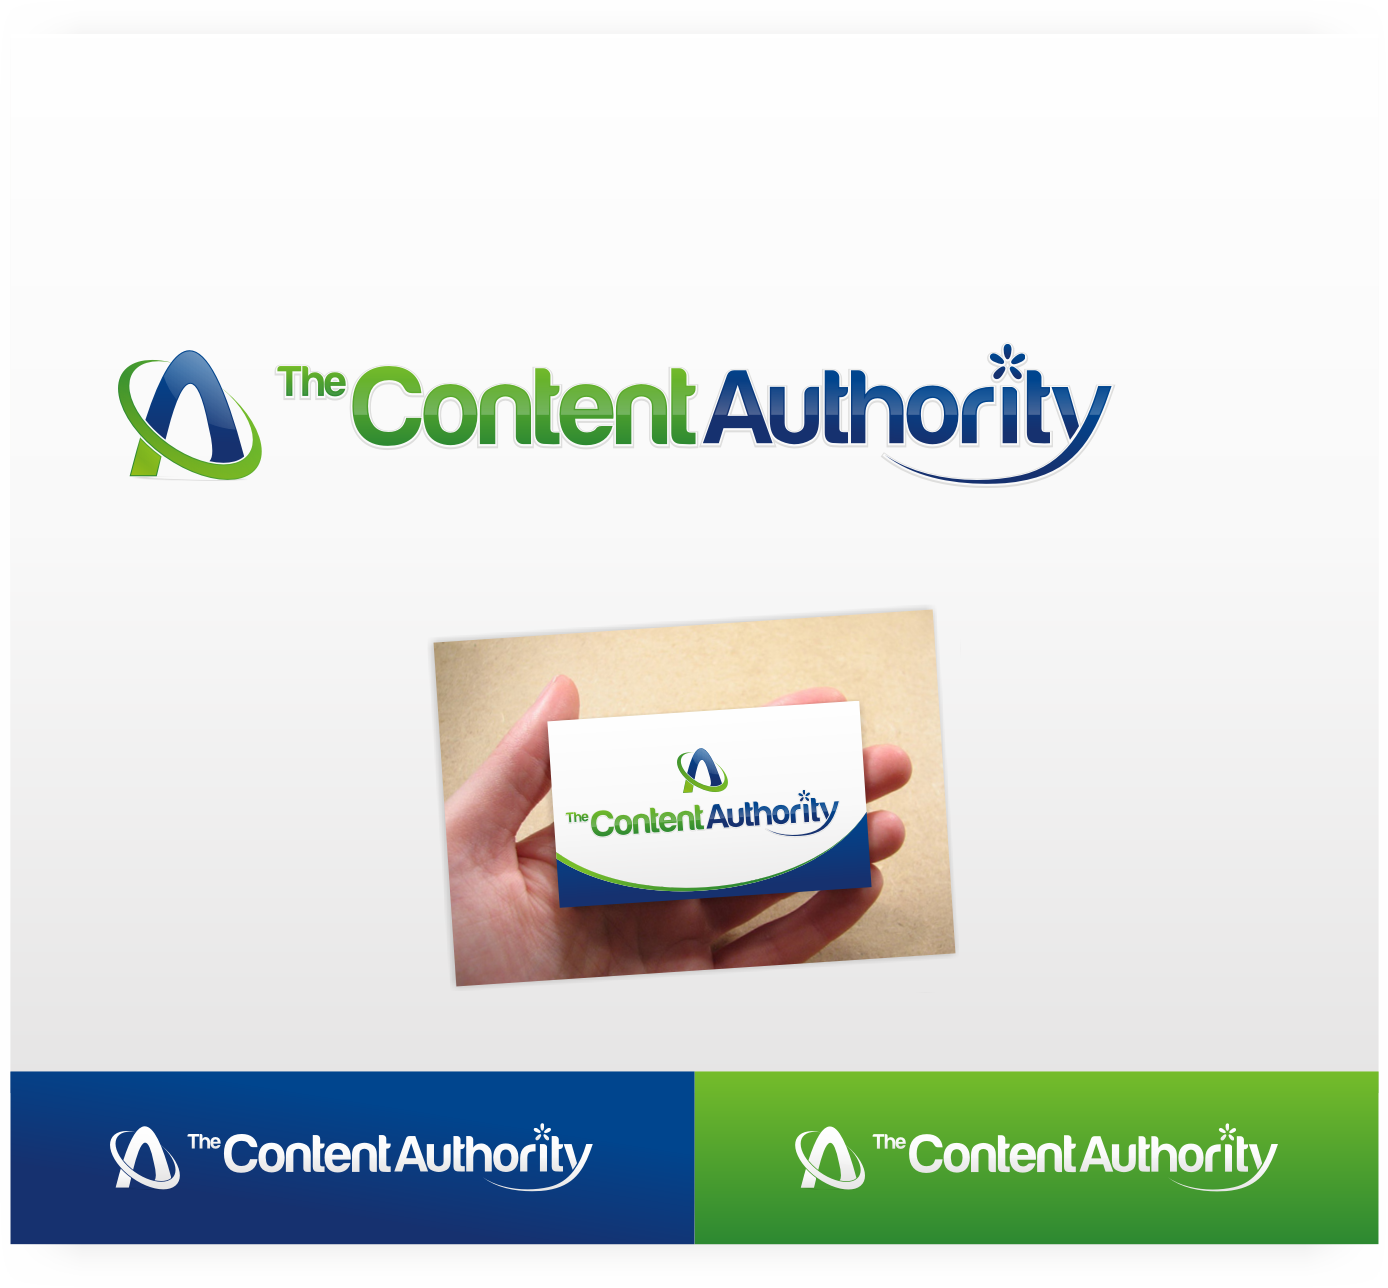 Help The Content Authority with a new logo